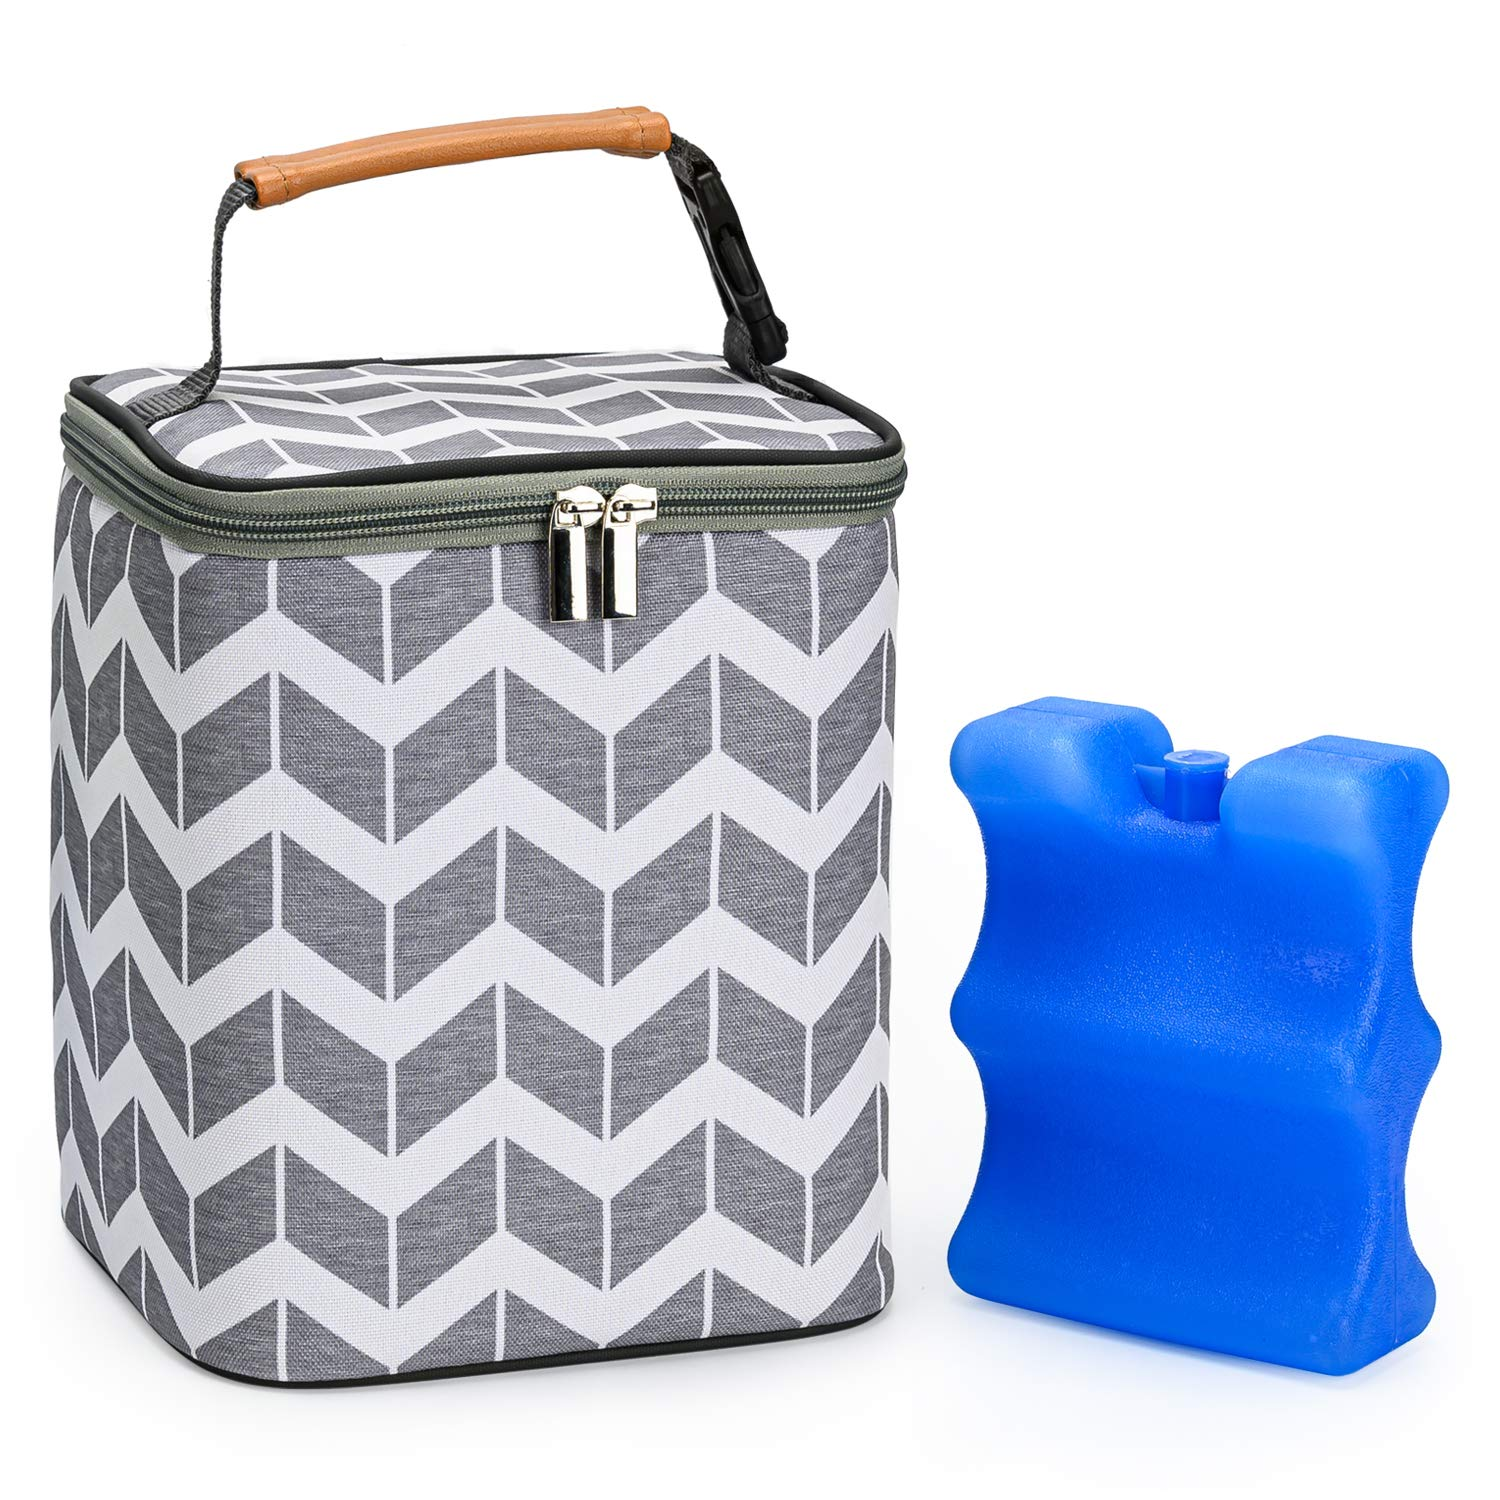 Momojing Breastmilk Cooler Bag and with Bottle Pack Free shipping on posting reviews Baby Ice Sale Special Price